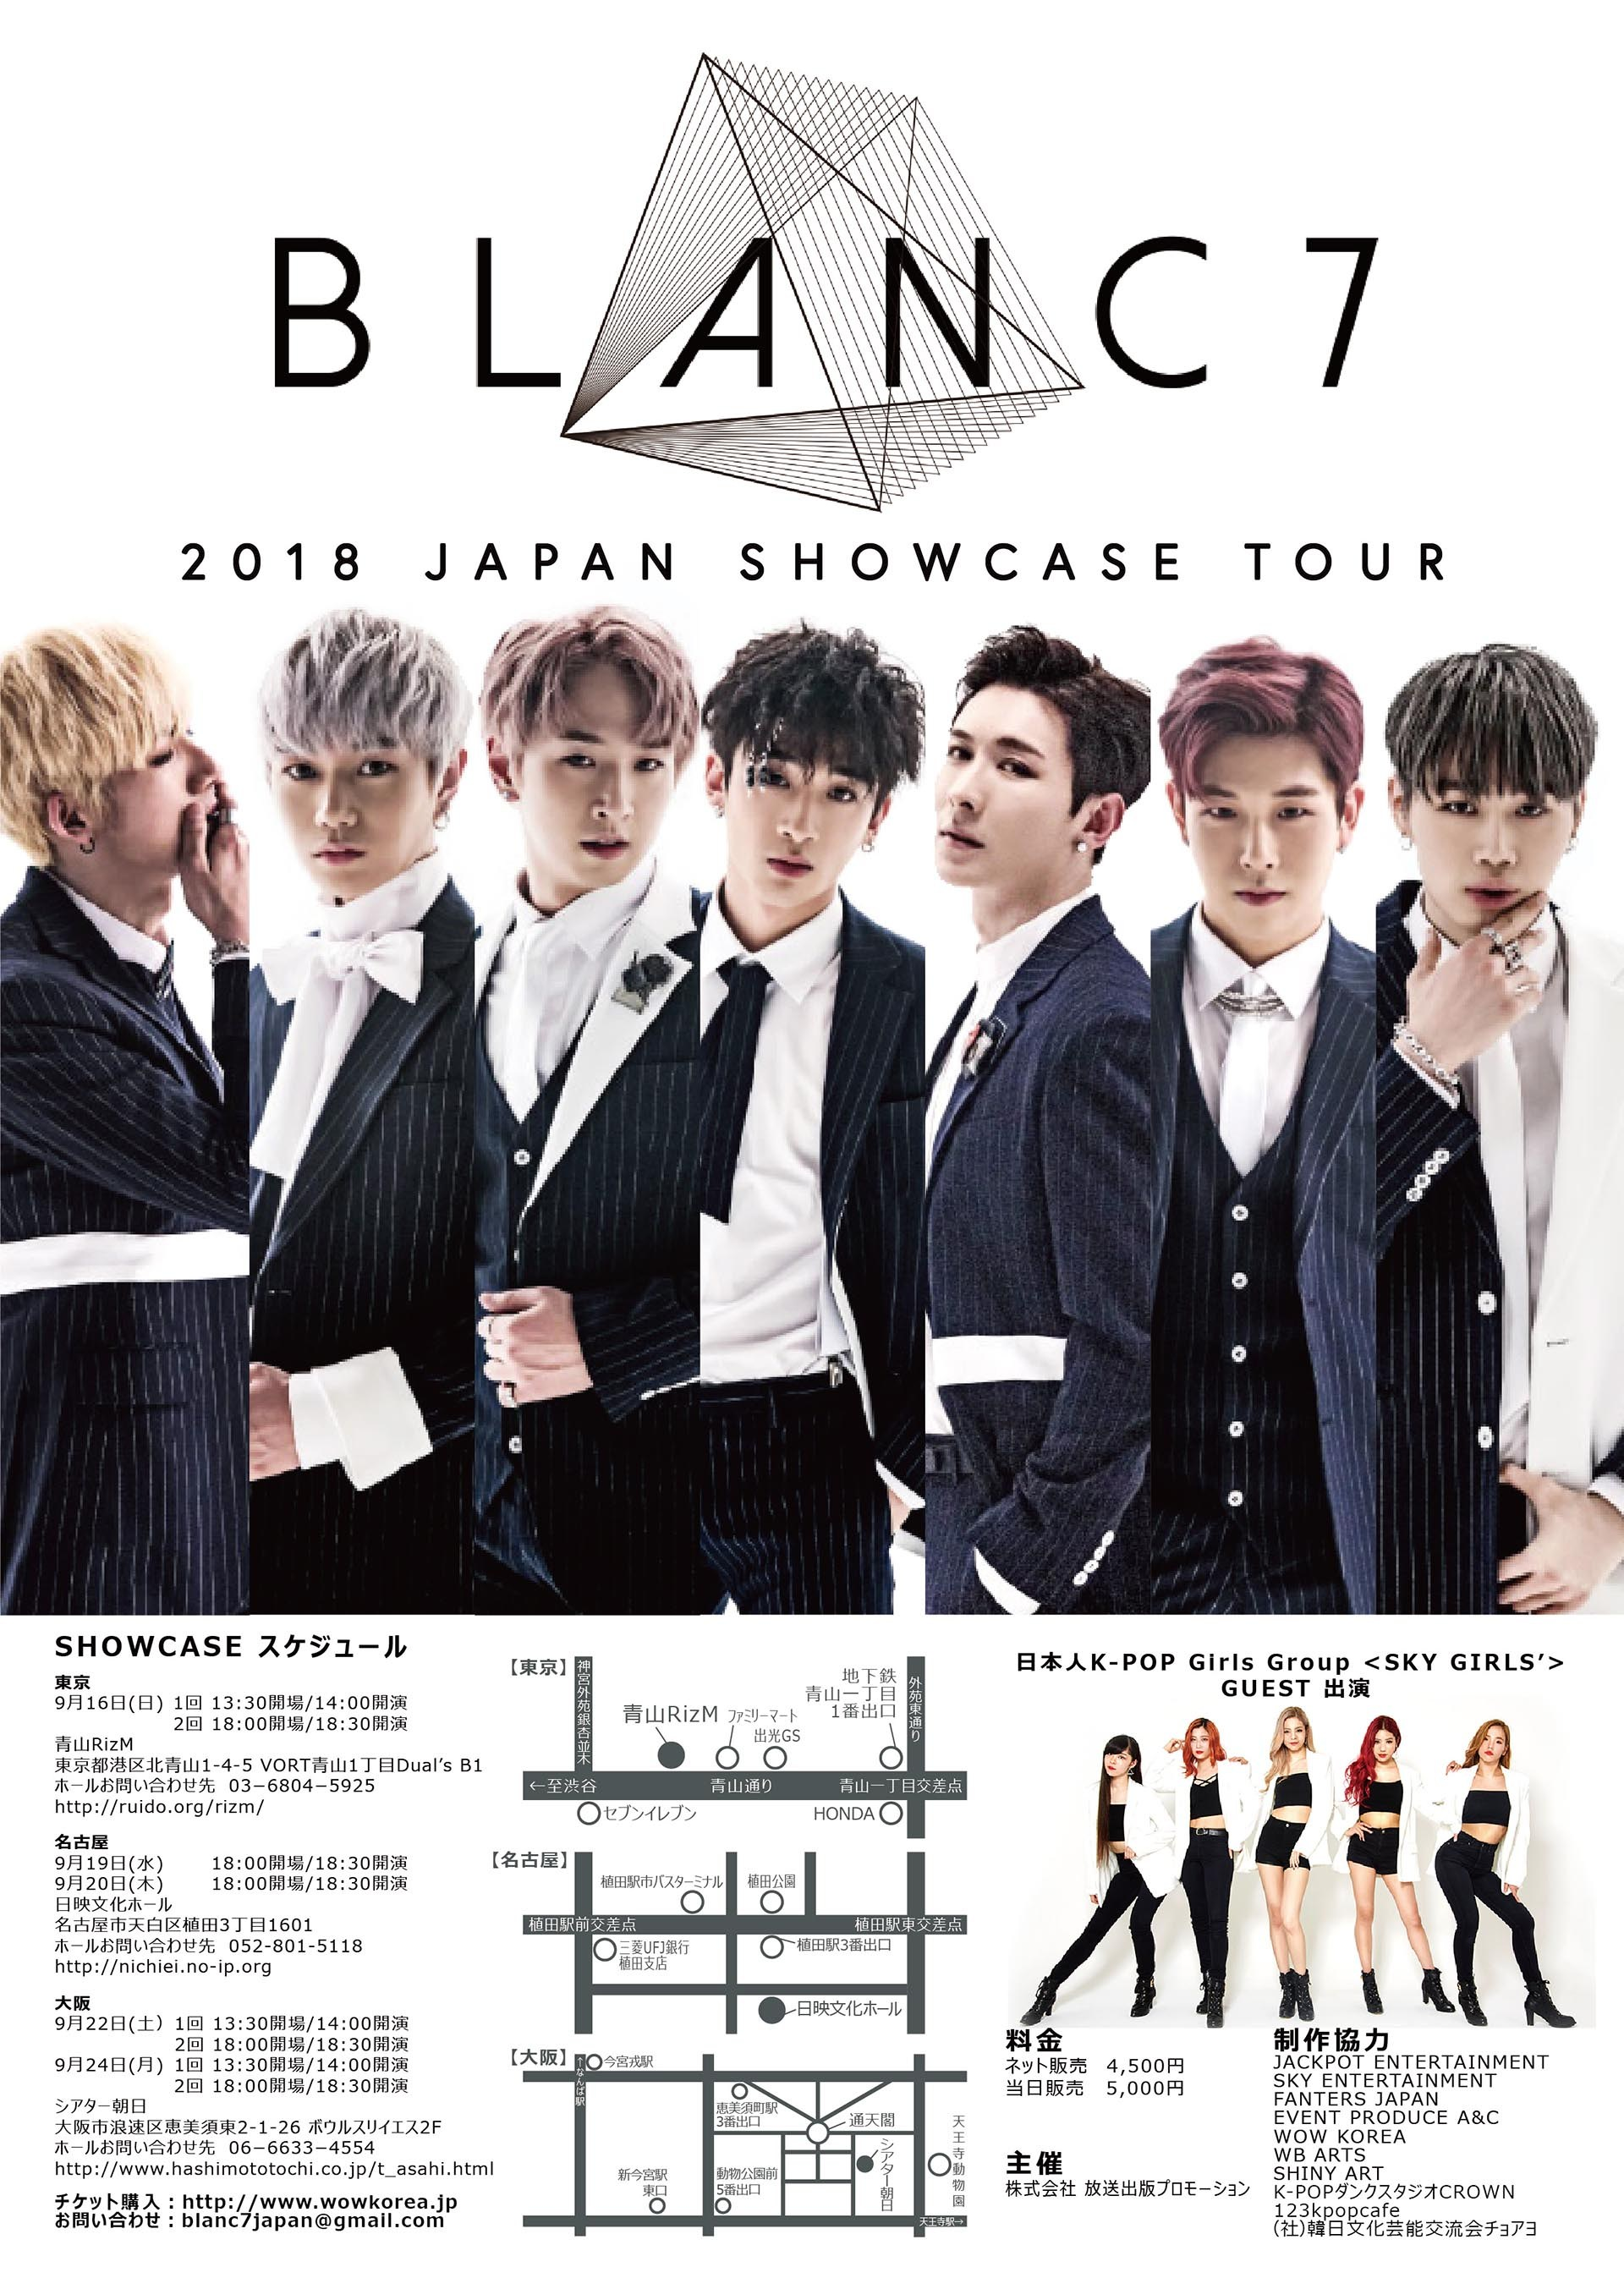 「BLANC7 2018 JAPAN SHOWCASE TOUR」